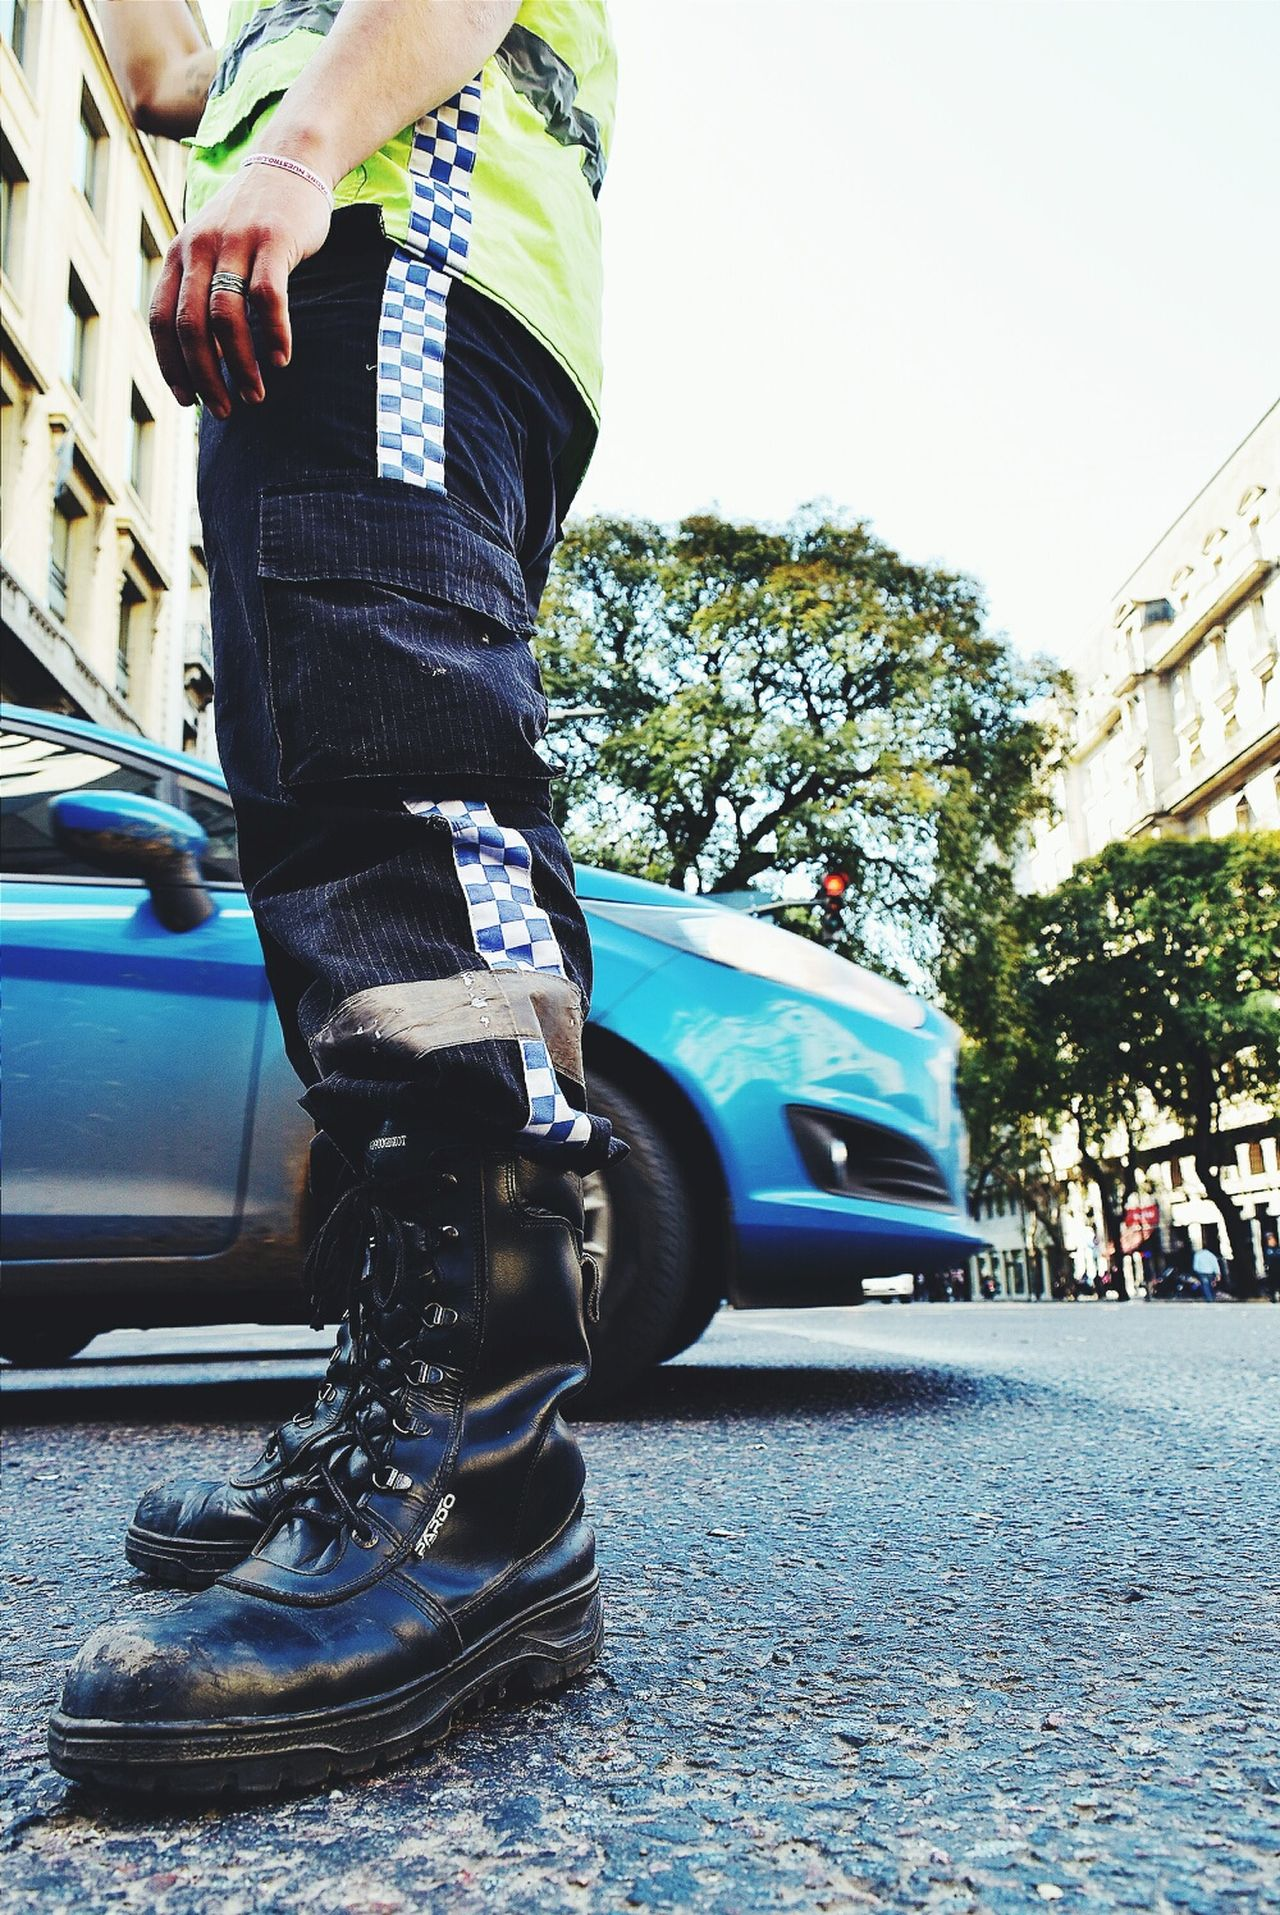 City Life Close-up NikonD5500 TakeoverContrast TheWeekOnEyeEM Bokeh Photography City Life Urbanphotography Nikon City Street Streetphotography Policeman Police At Work Police Boots Traffic Police  Traffic Jam Traffic Control